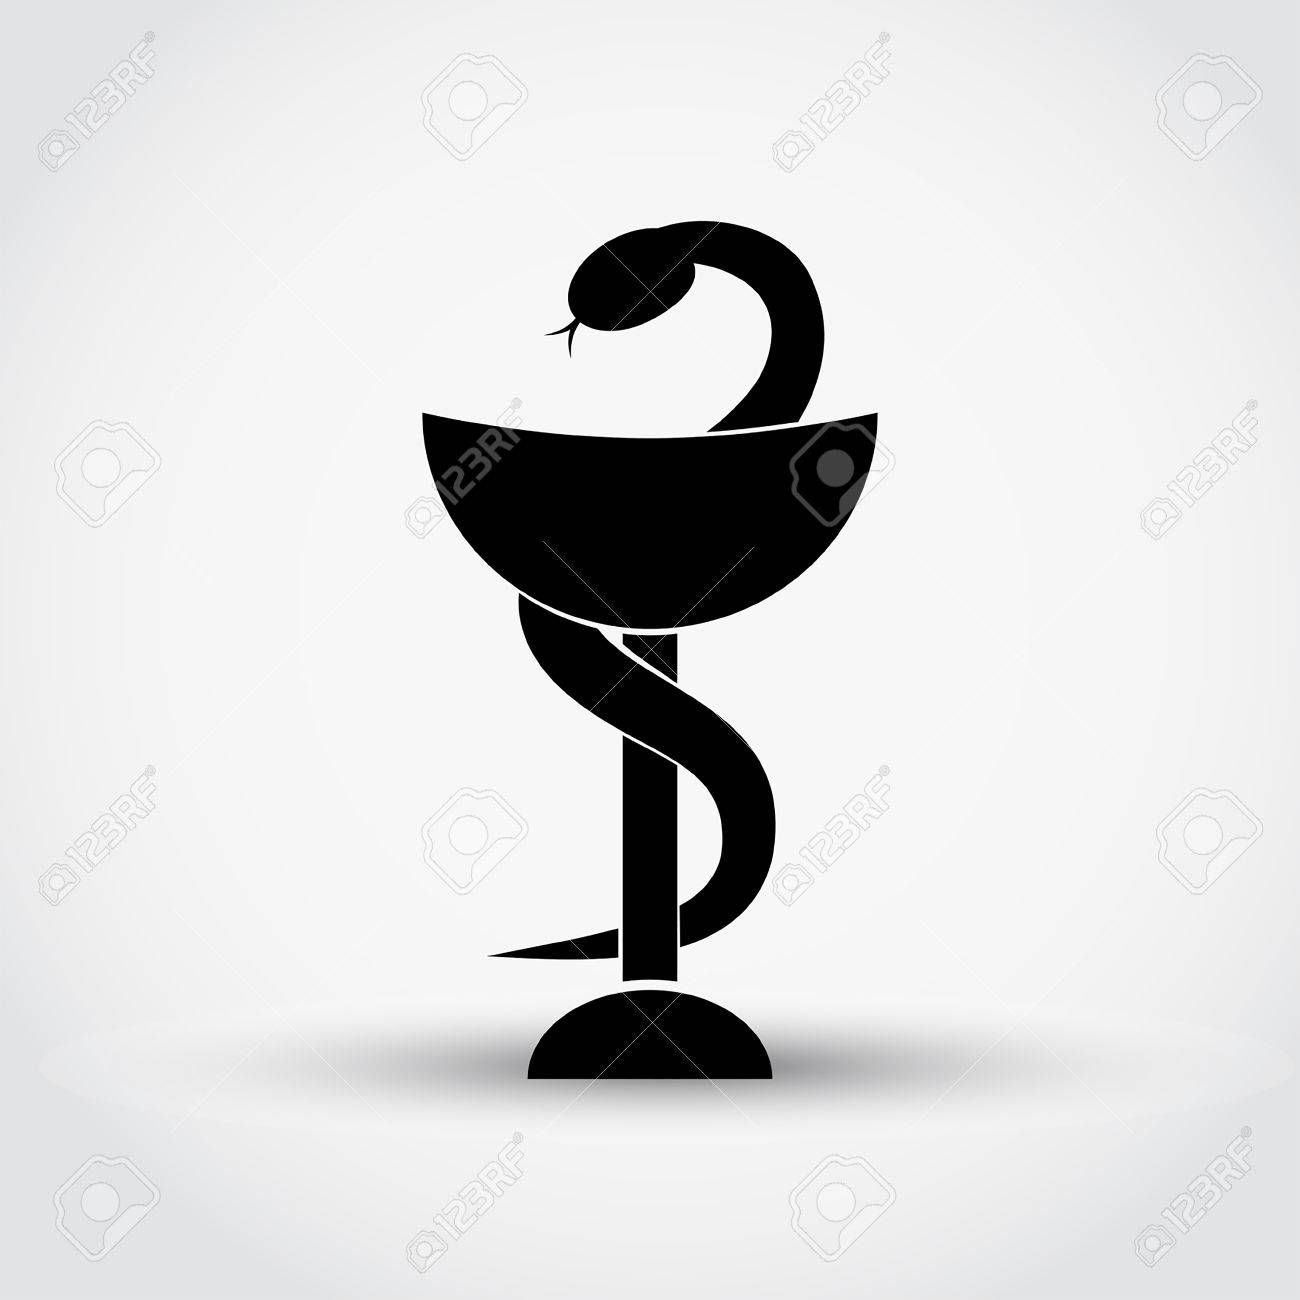 pharmacy symbol medical snake and cup vector icon royalty free